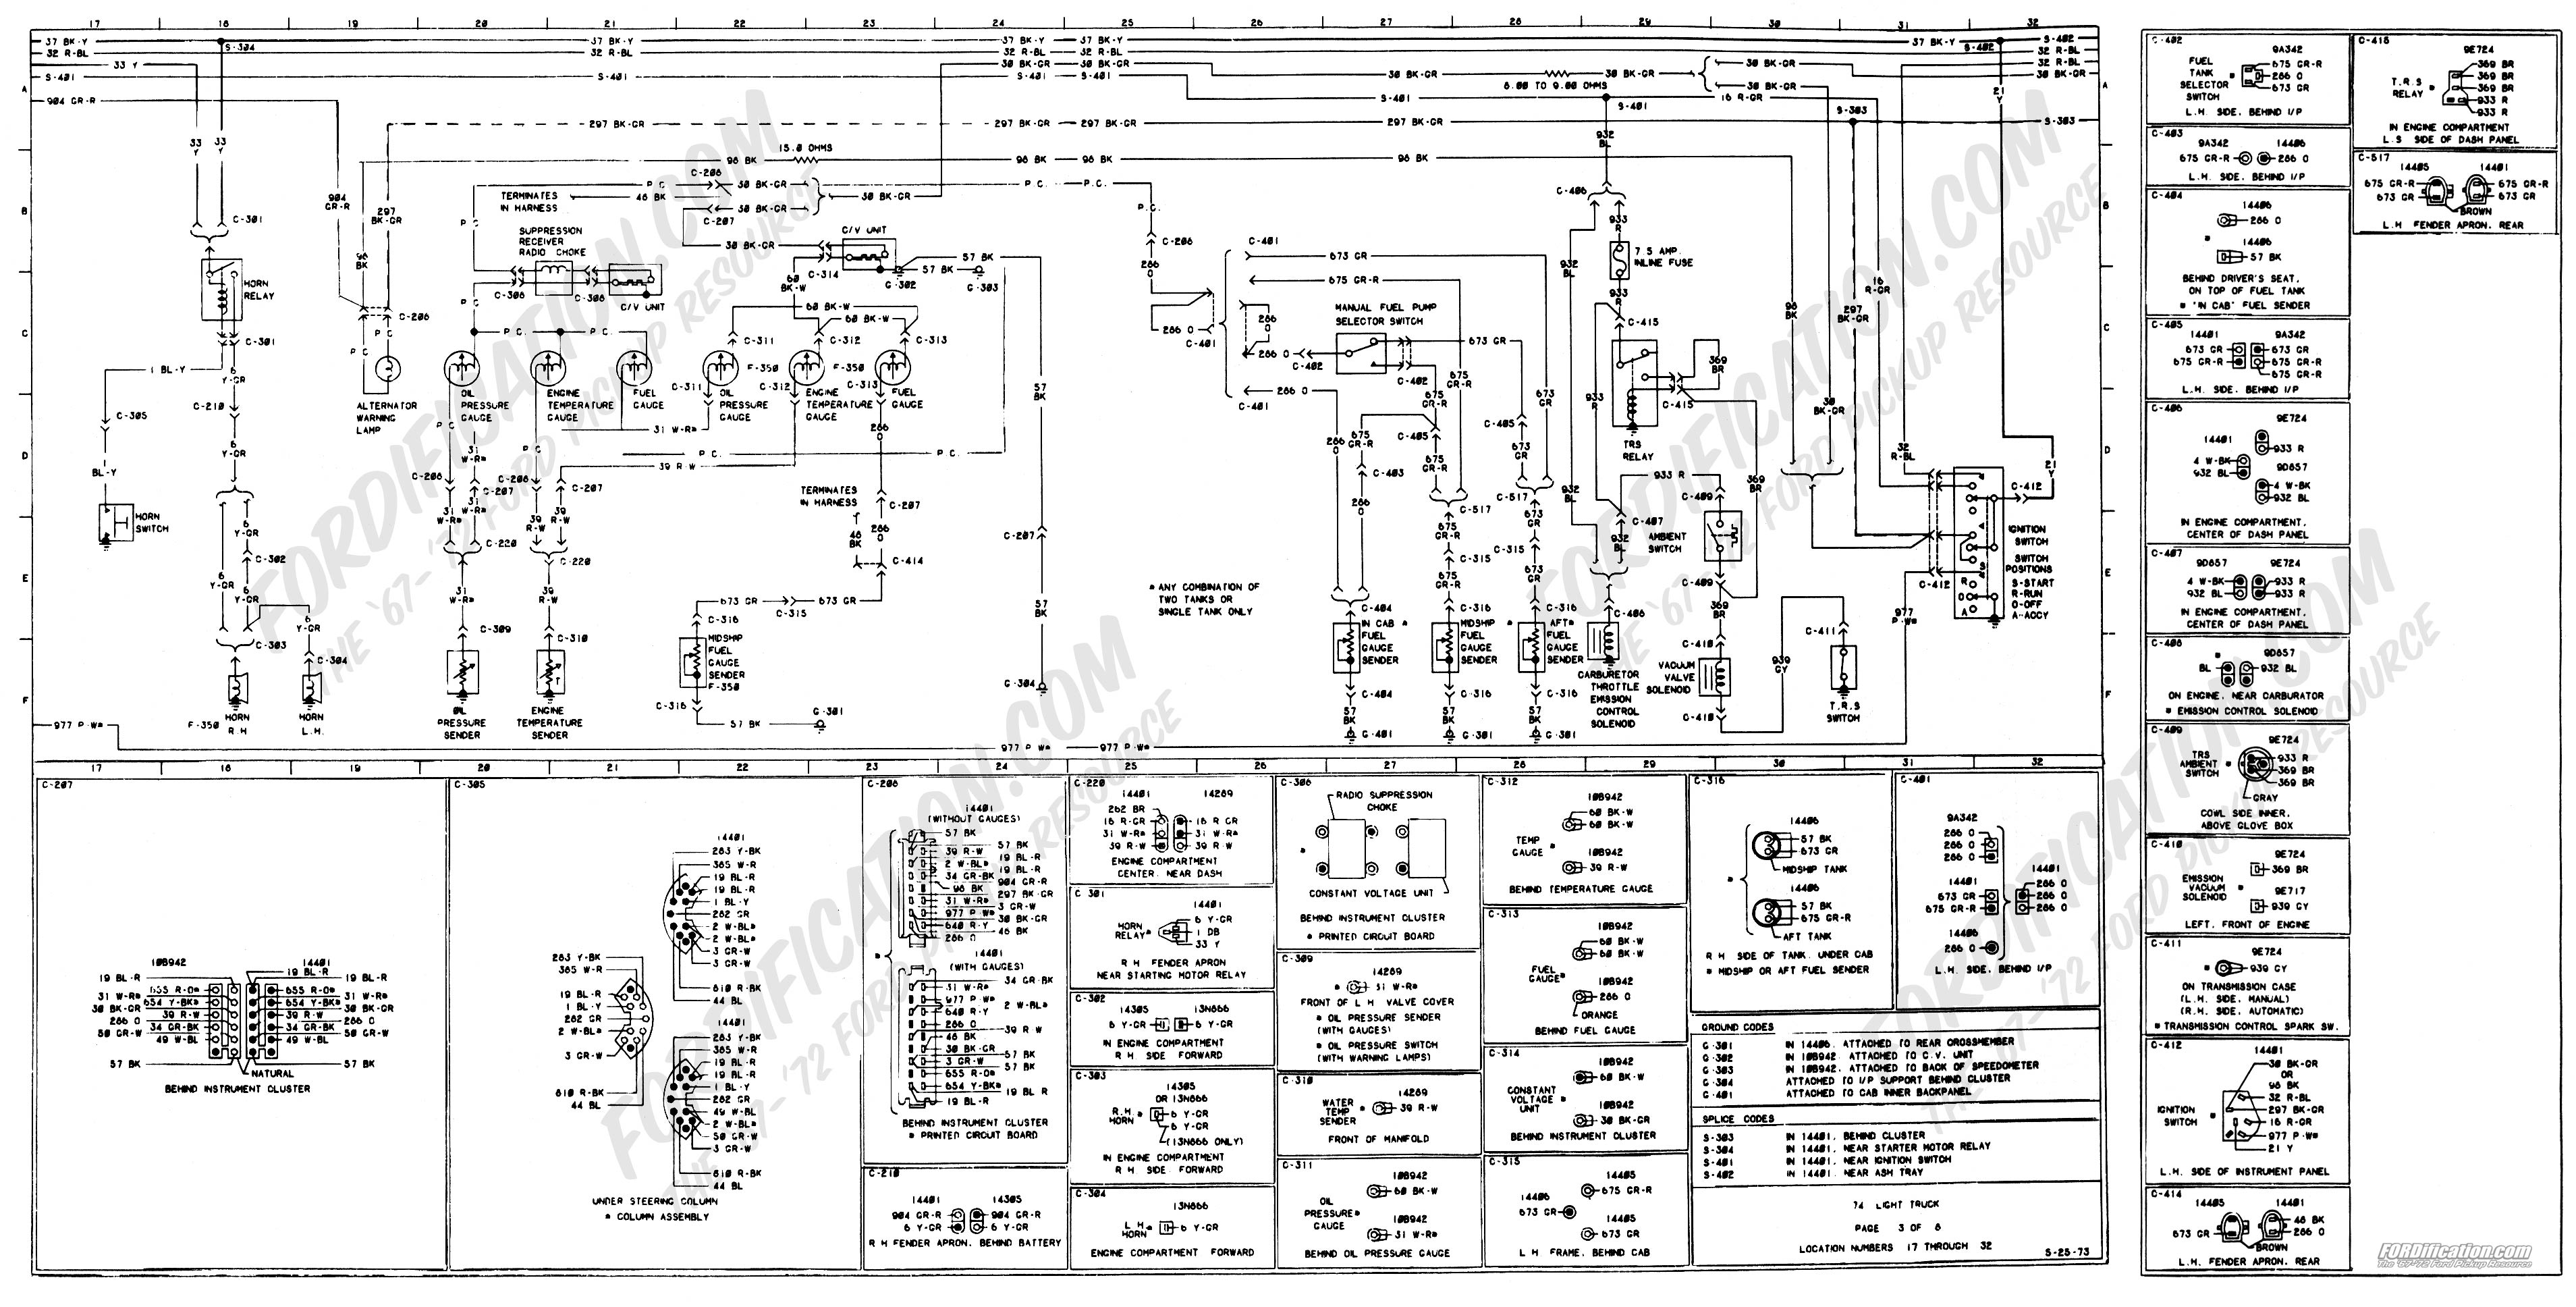 wiring_74master_3of8 1973 1979 ford truck wiring diagrams & schematics fordification net 1979 ford bronco fuse box diagram at bayanpartner.co